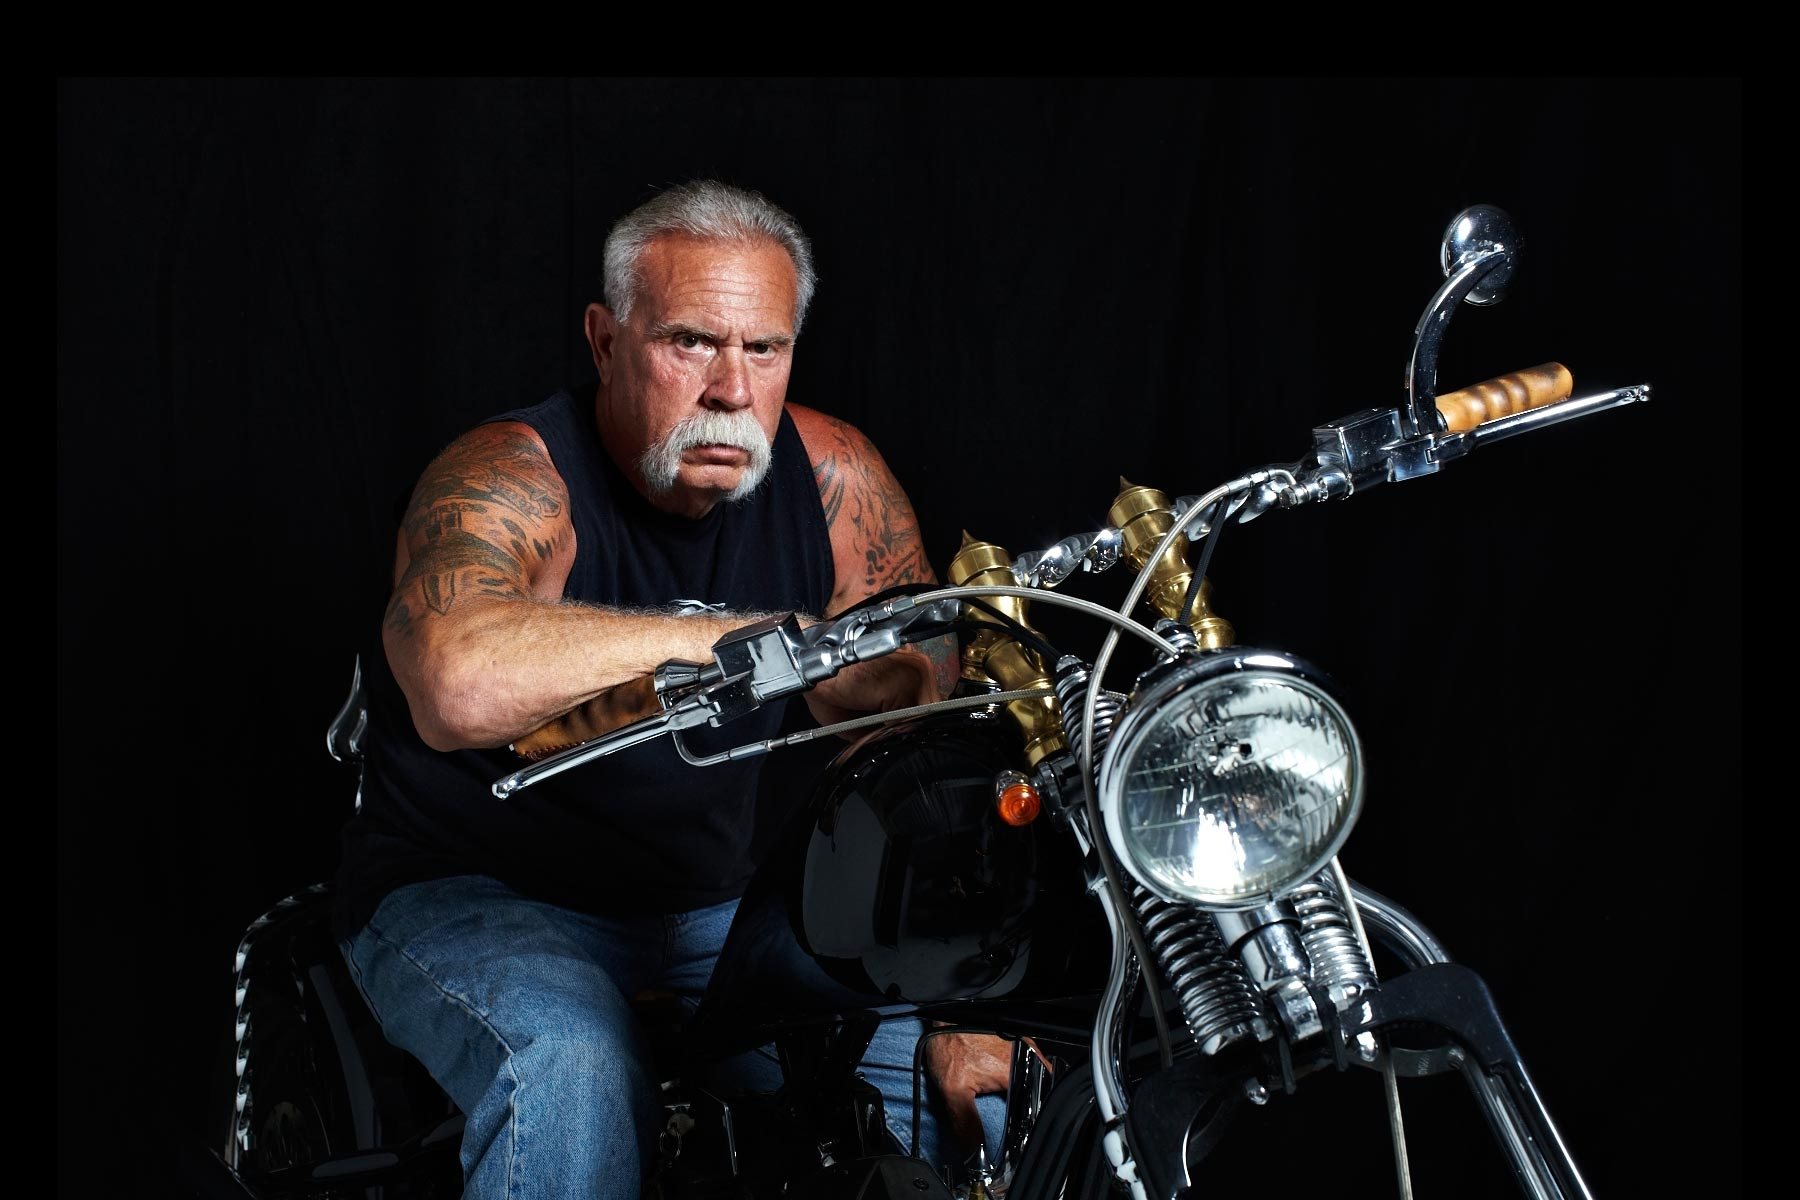 American Chopper Archives - Asphalt & Rubber